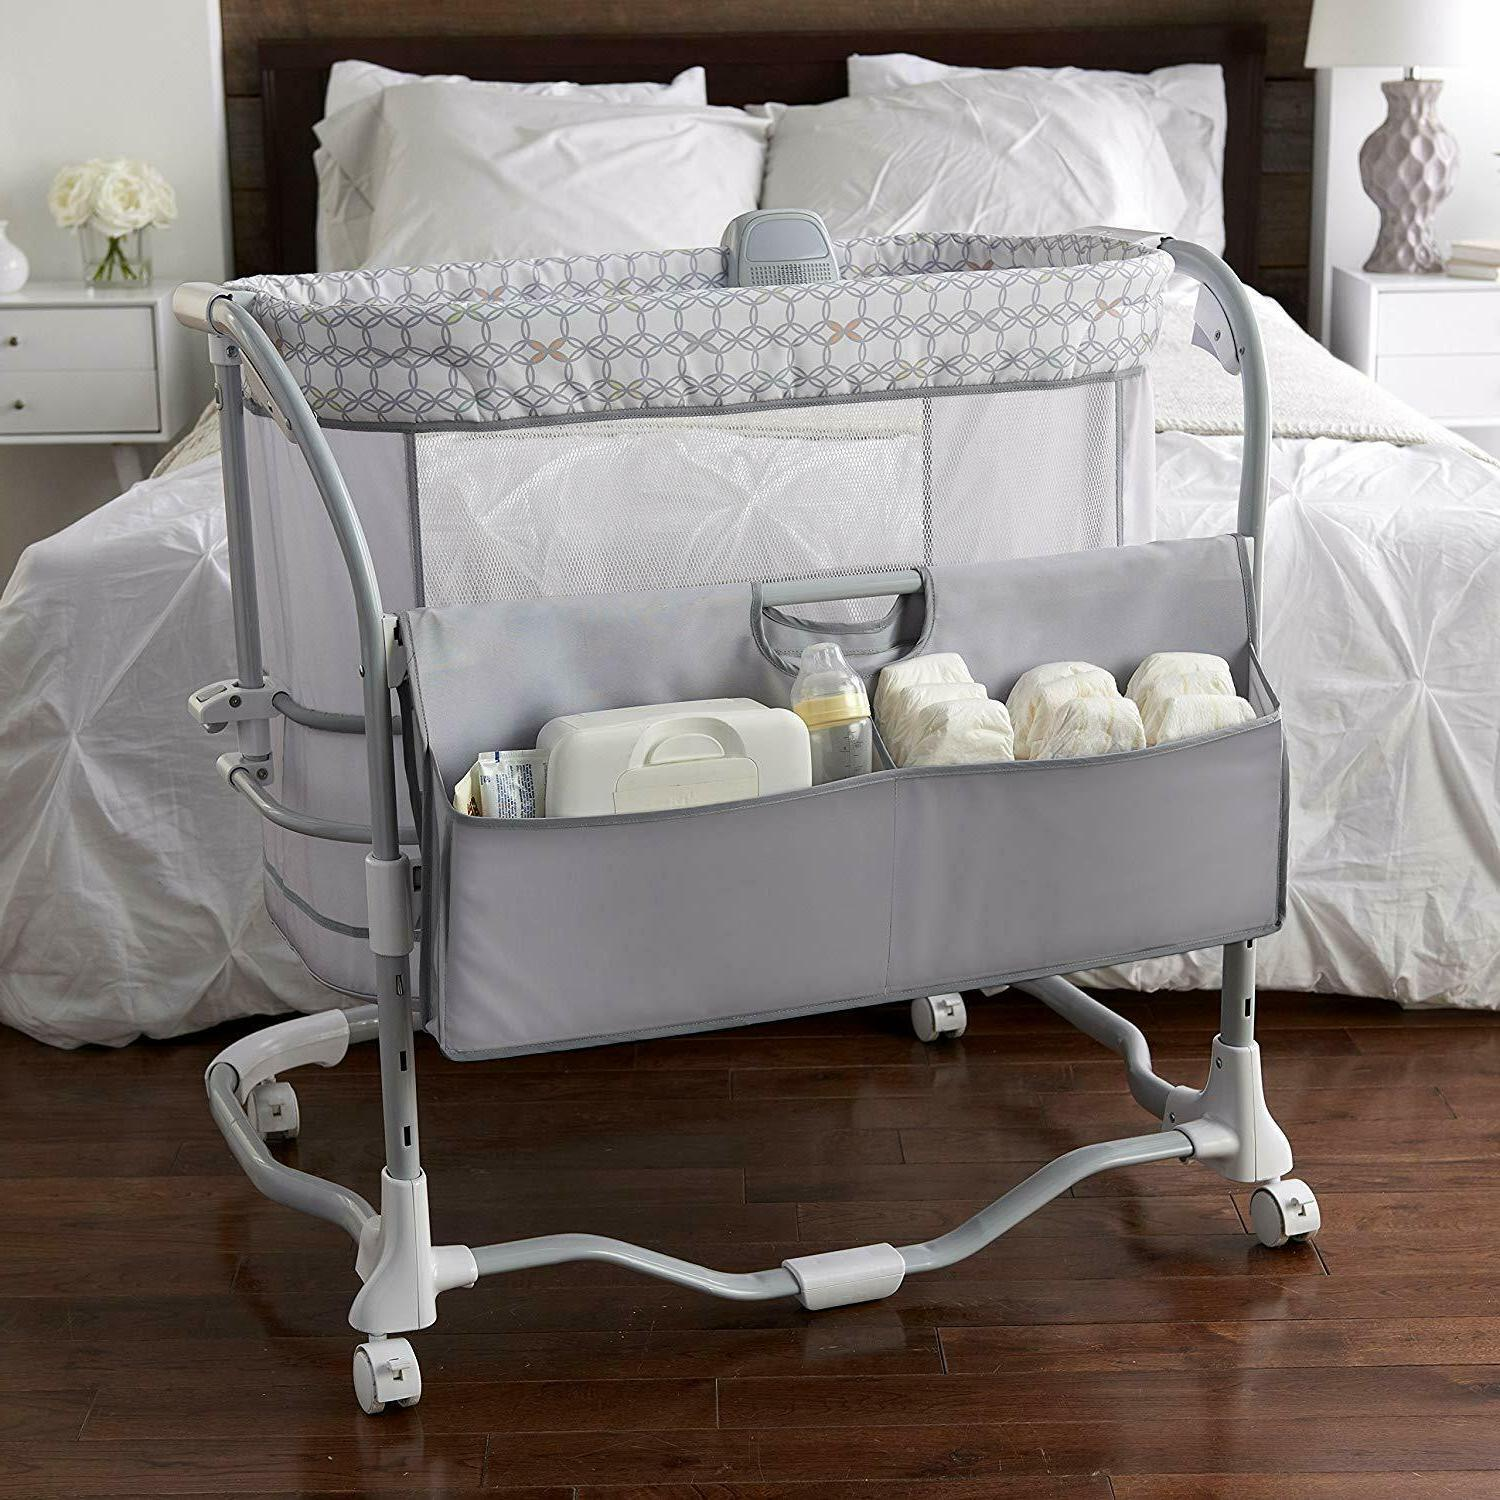 Baby Bassinet Furniture Bed Lullaby